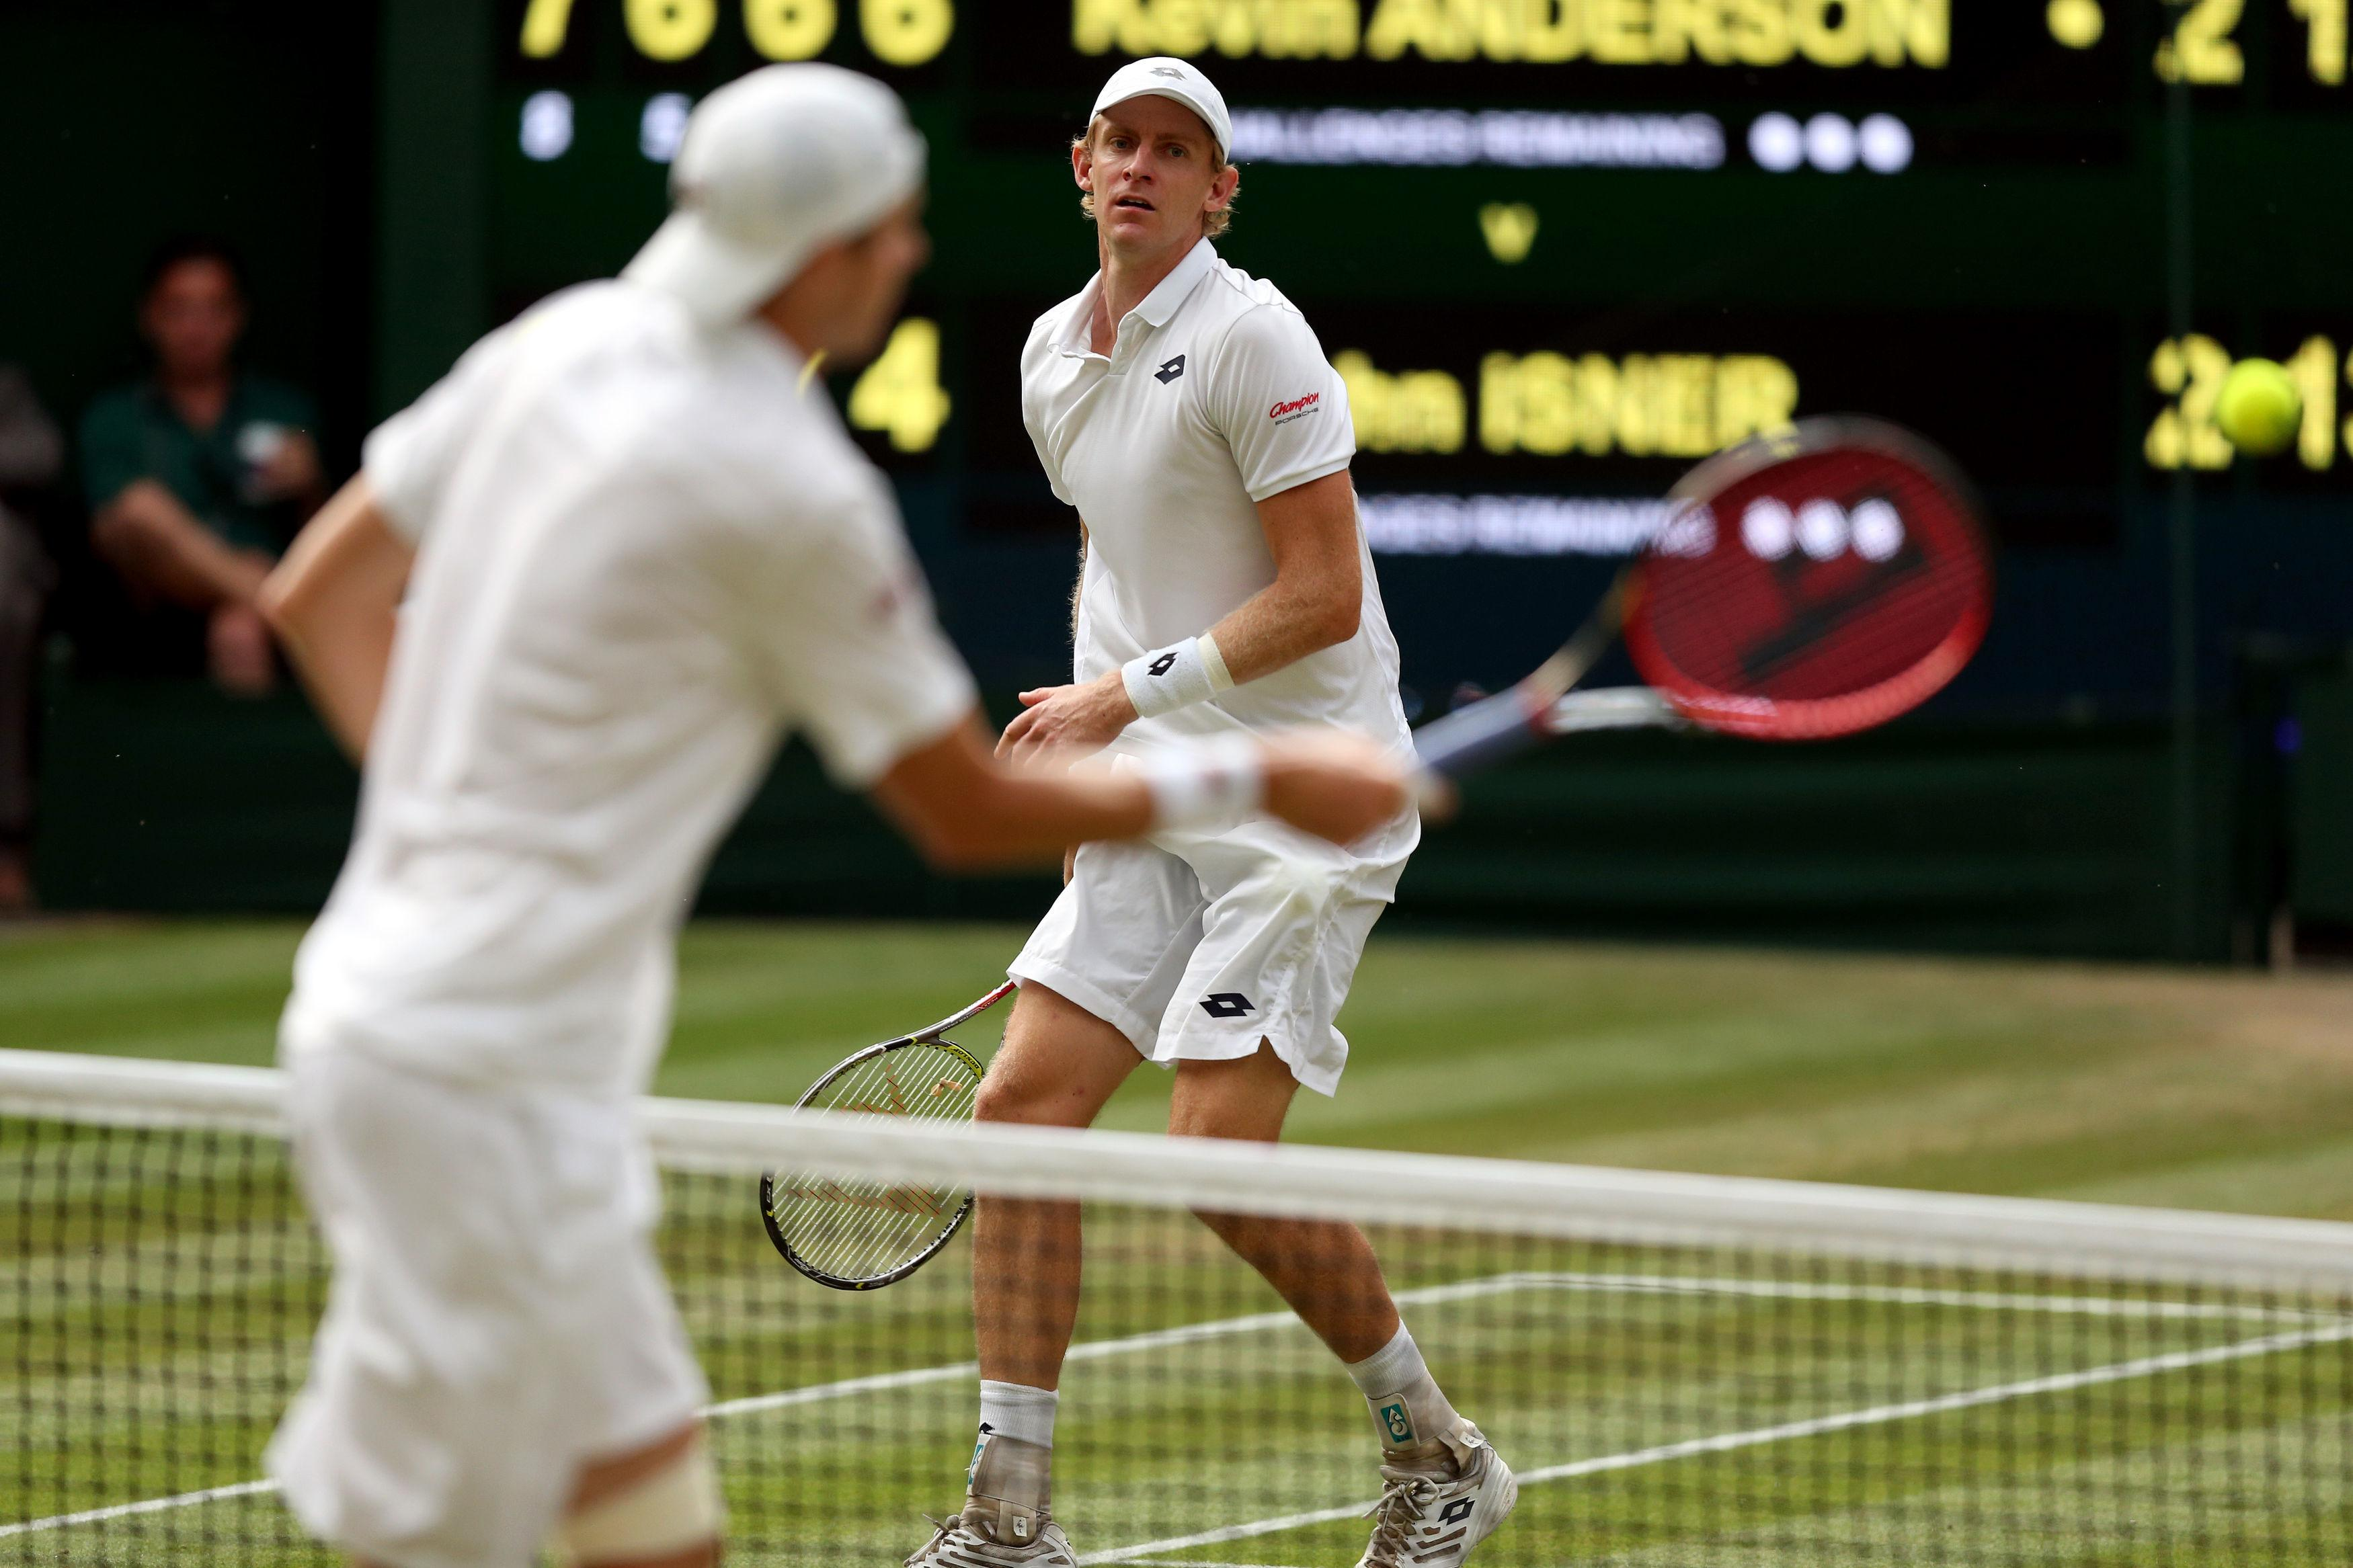 Kevin Anderson looks on as John Isner puts away a volley in their super-duel